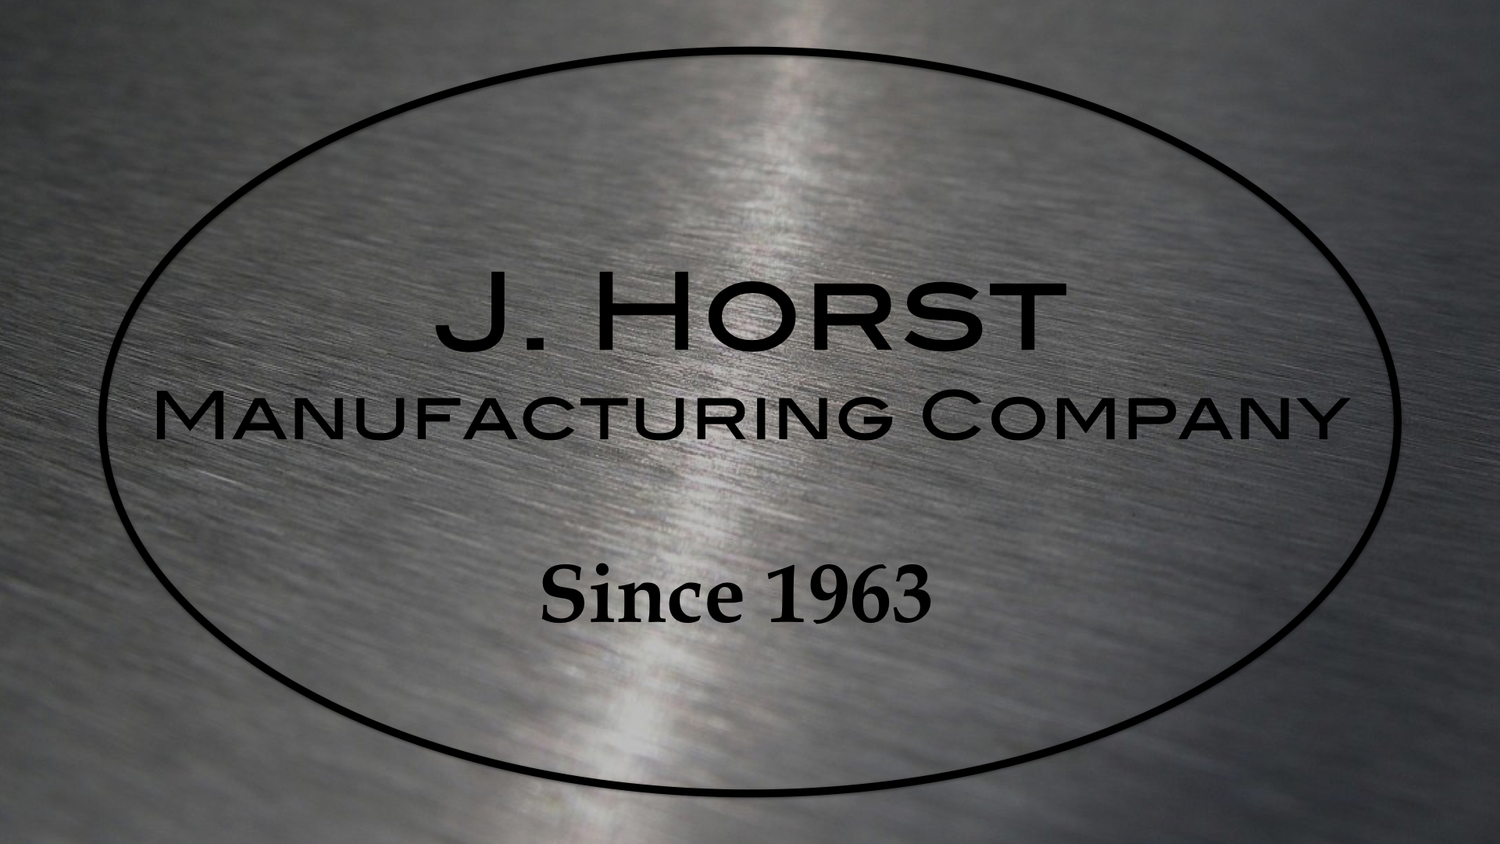 The J. Horst Manufacturing Company